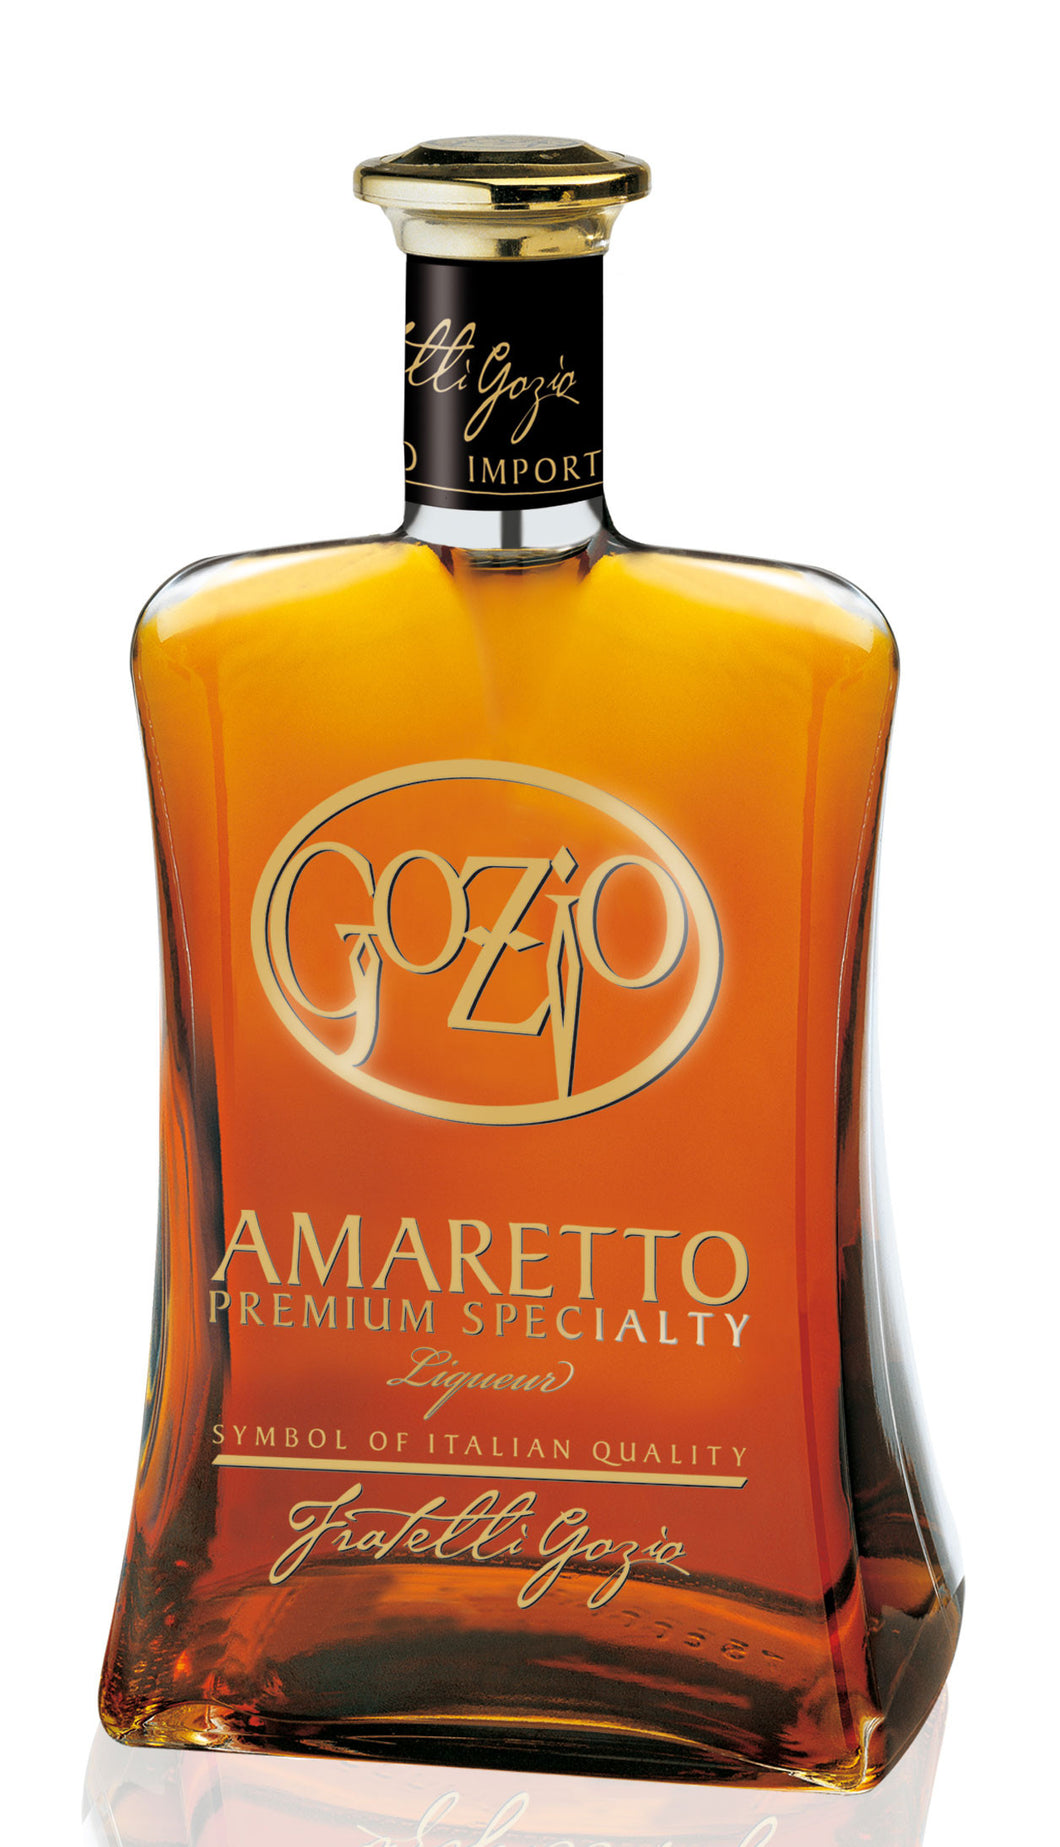 Gozio Amaretto - Grapes & Hops Deli